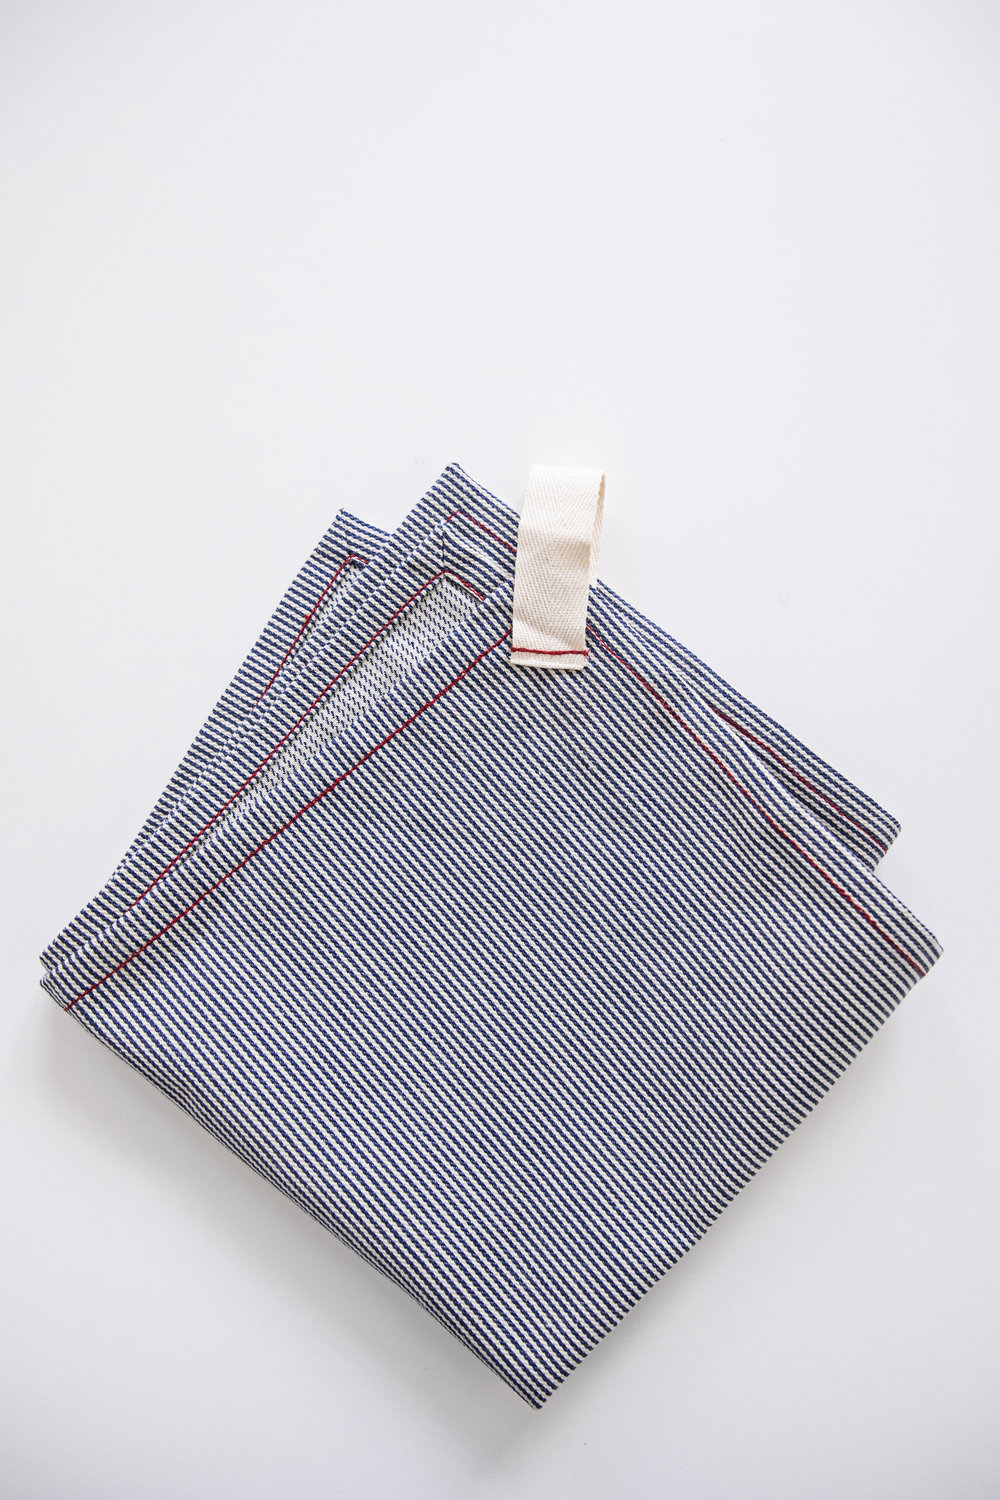 railroad stripe napkin with loop tab detail / heirloomed